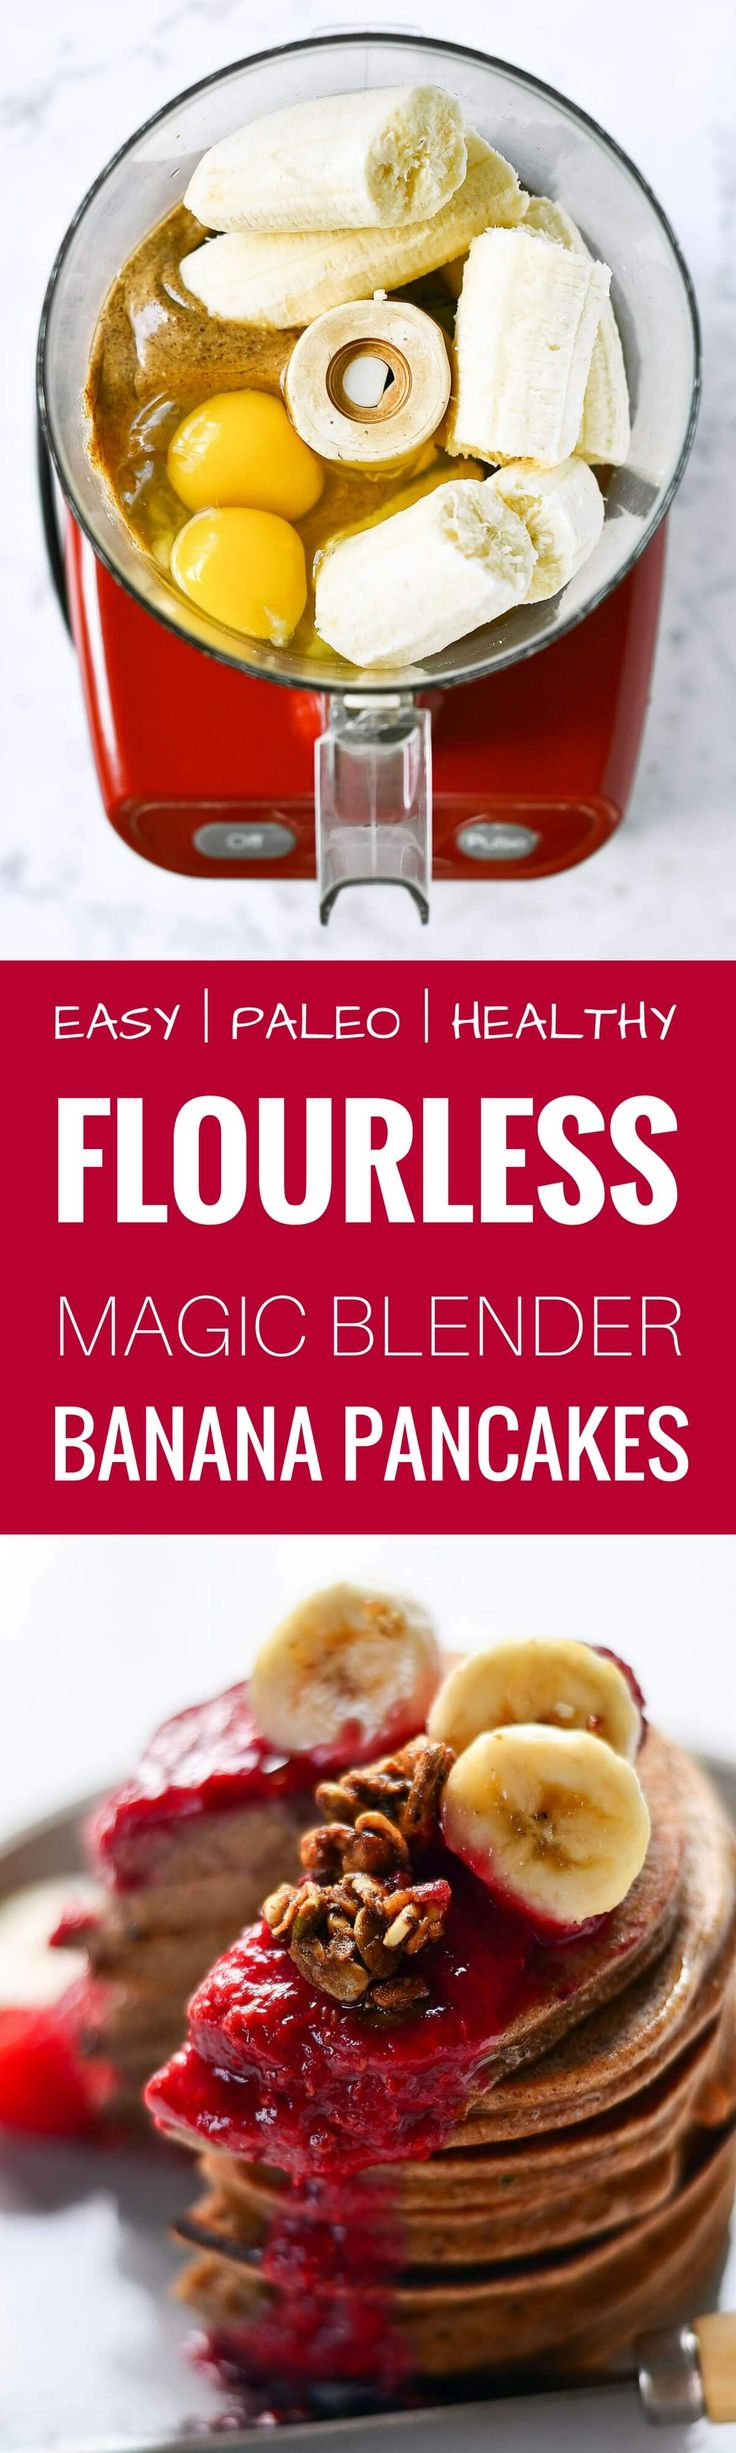 Magic paleo blender banana pancakes. best paleo pancakes recipe. Light, soft, and fluffy! 3 ingredients. Easy paleo pancake recipe. Best healthy banana pancakes recipe. Flourless banana pancakes. Panc